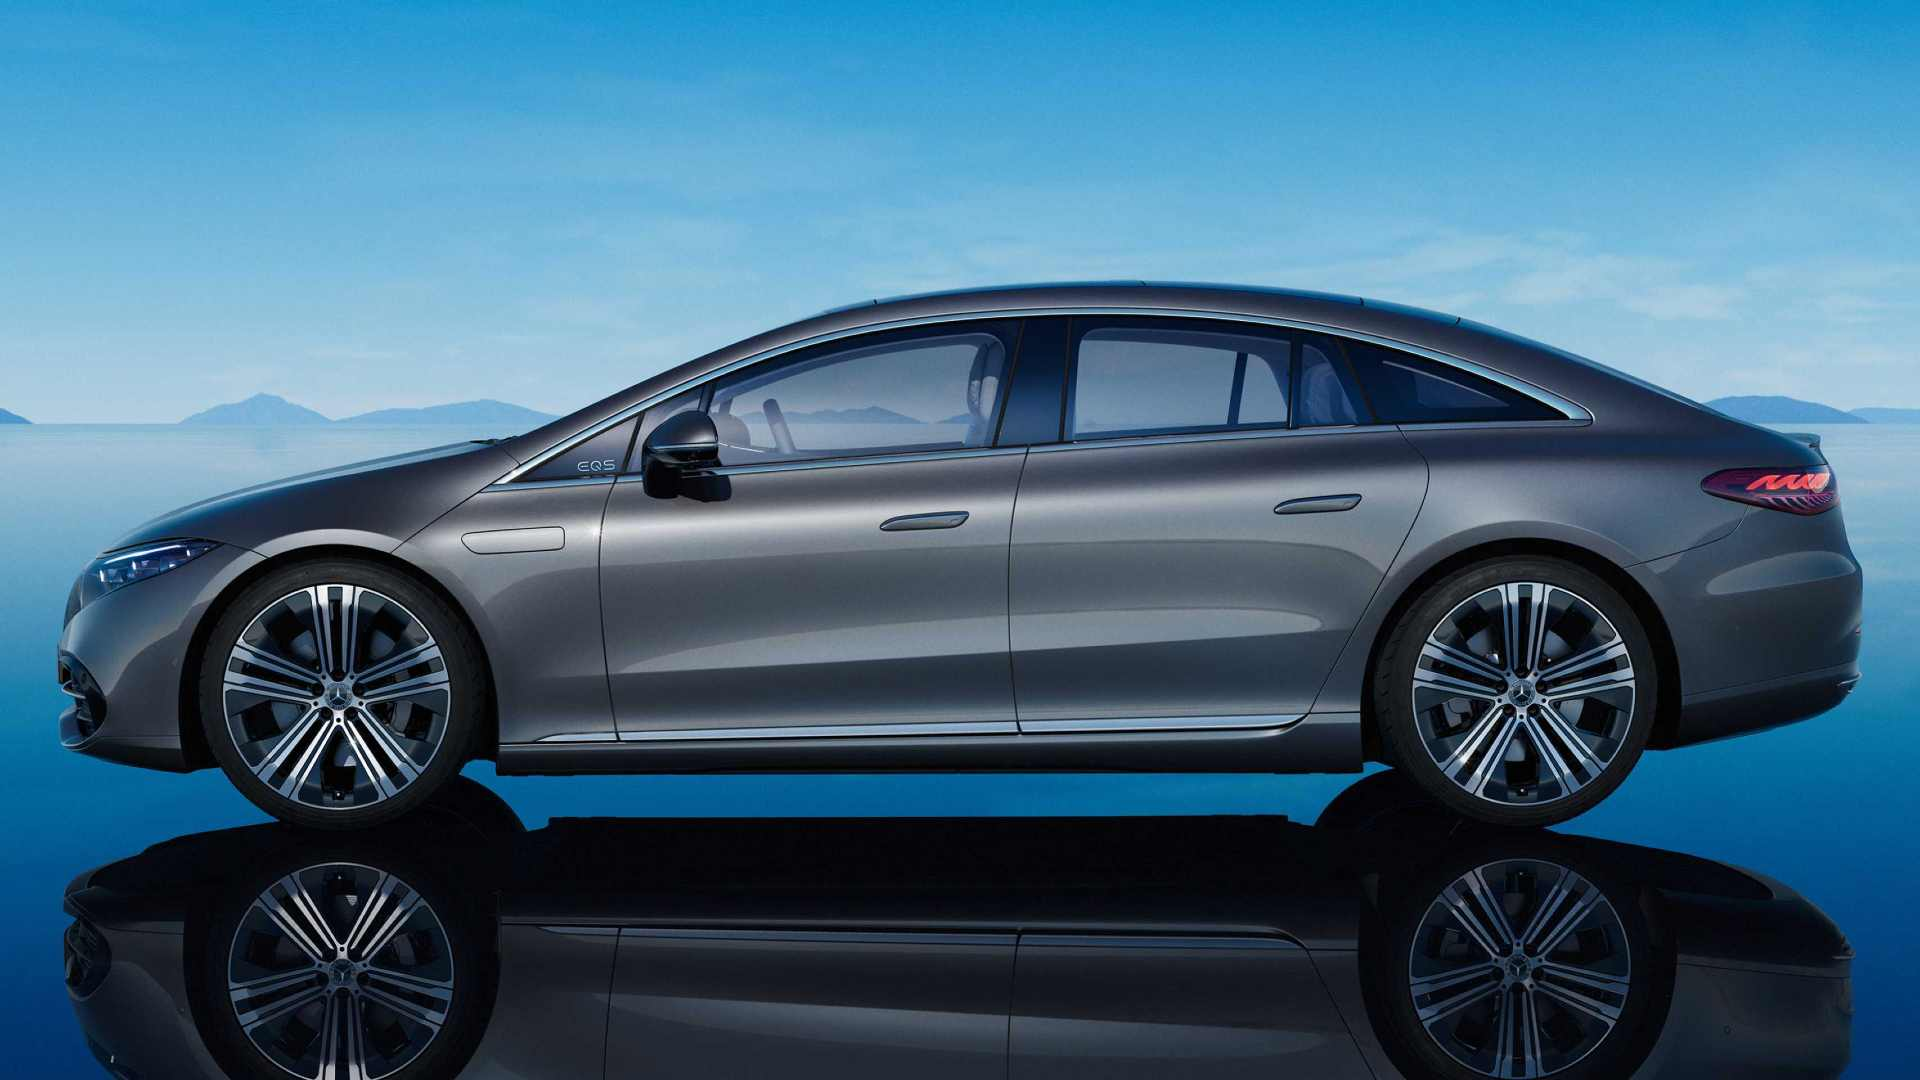 At 3,210 mm, the Mercedes-Benz EQS' wheelbase nearly mirrors that of the long-wheelbase S-Class. Image: Mercedes-Benz